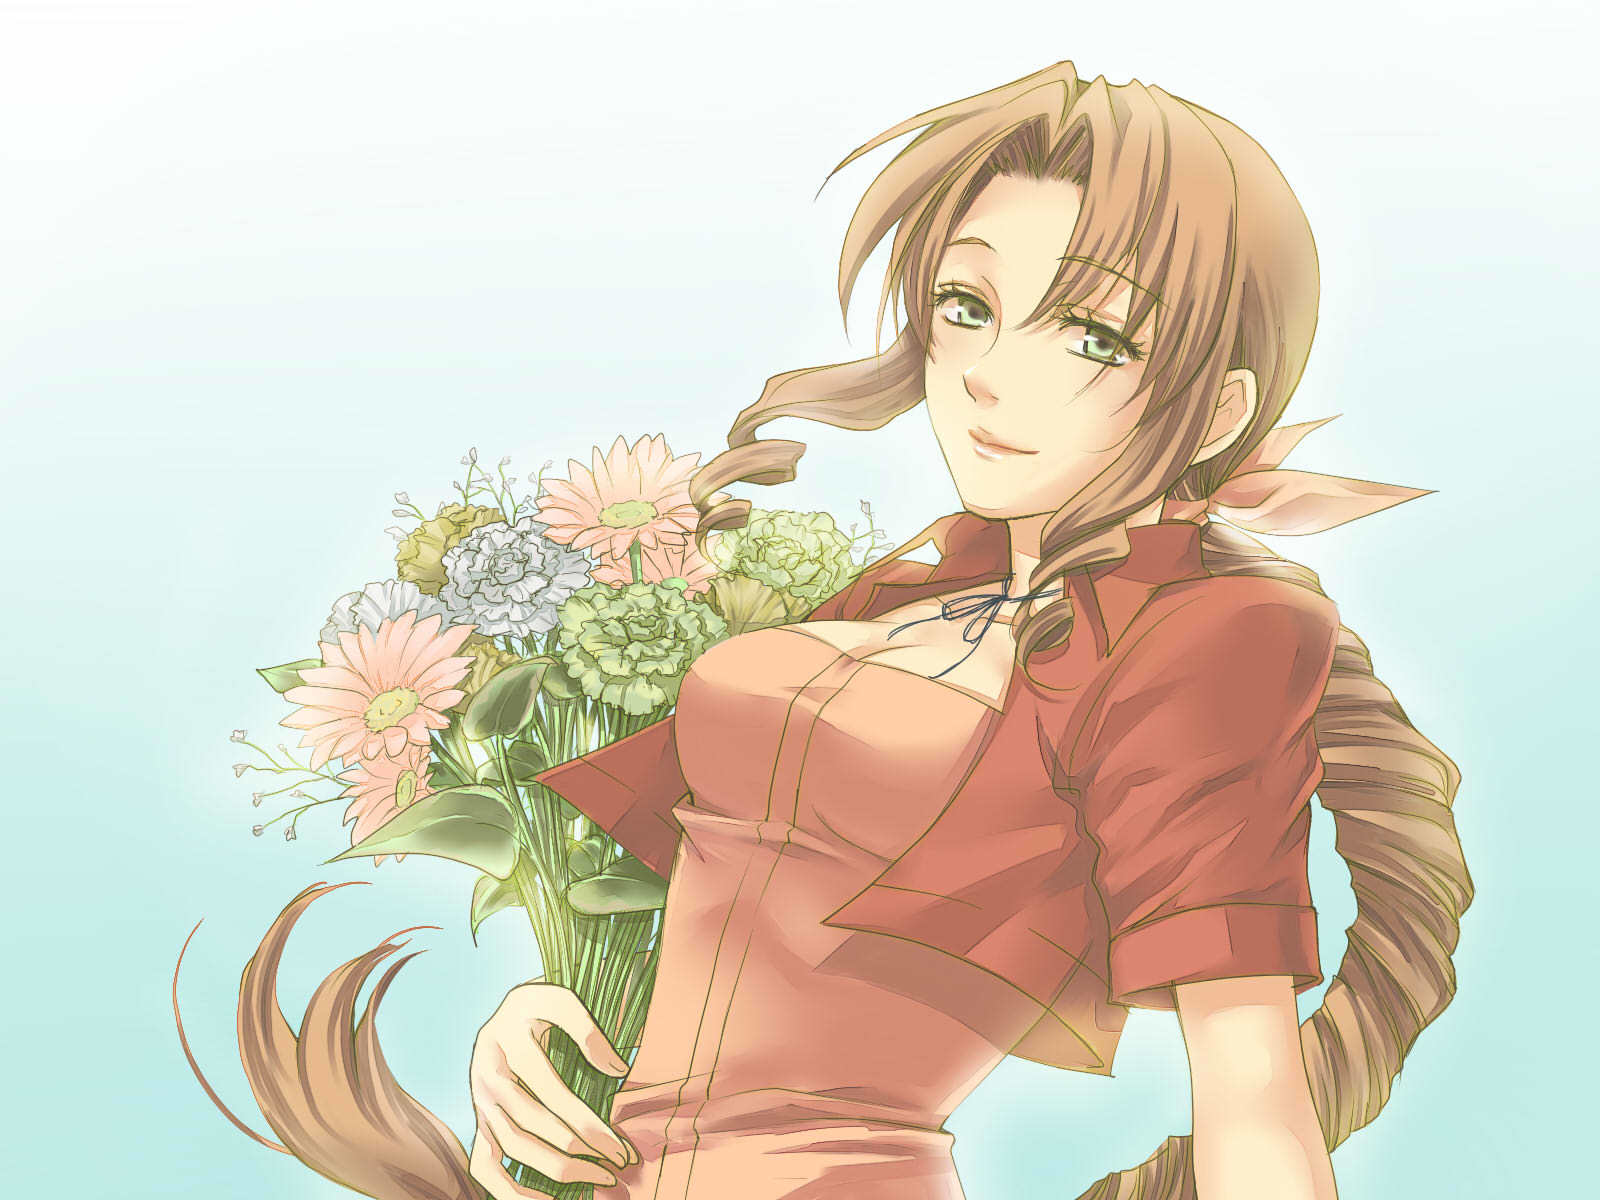 final fantasy vii Aerith HD Wallpaper